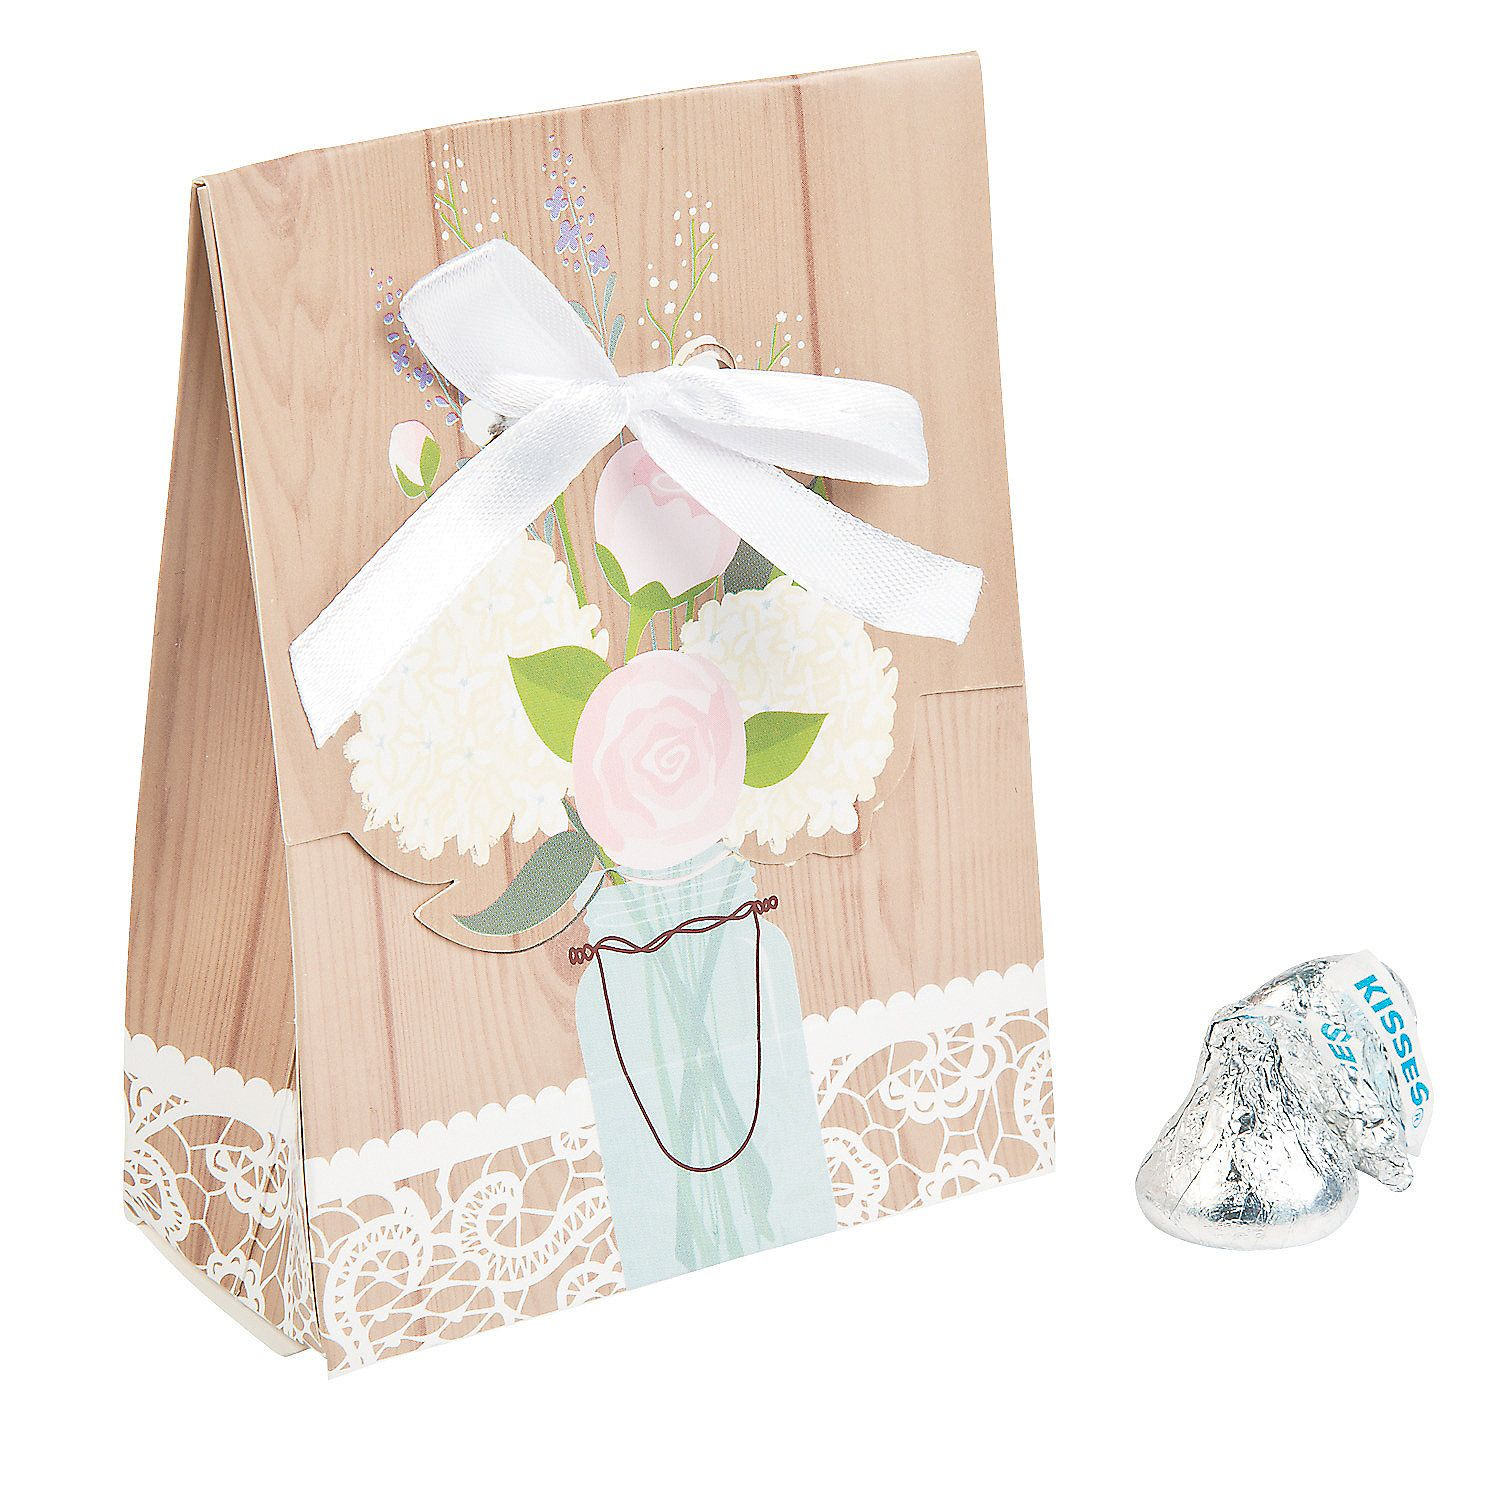 Rustic Wedding Treat Bags | Wedding goody bags, Rustic wedding ...